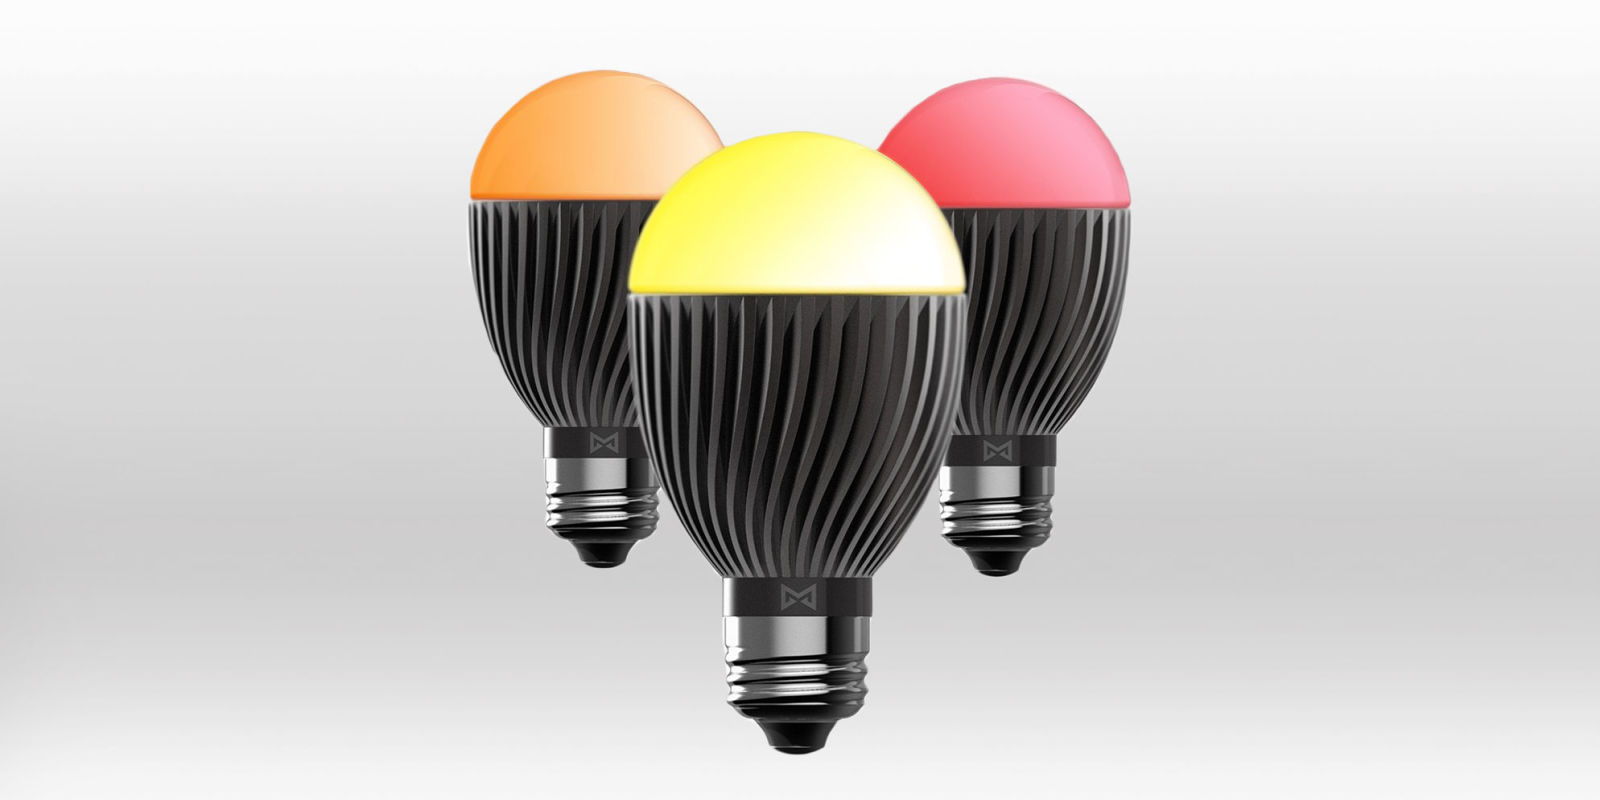 12 Best Smart Light Bulbs In 2016 Top Bluetooth And Led Light Bulbs